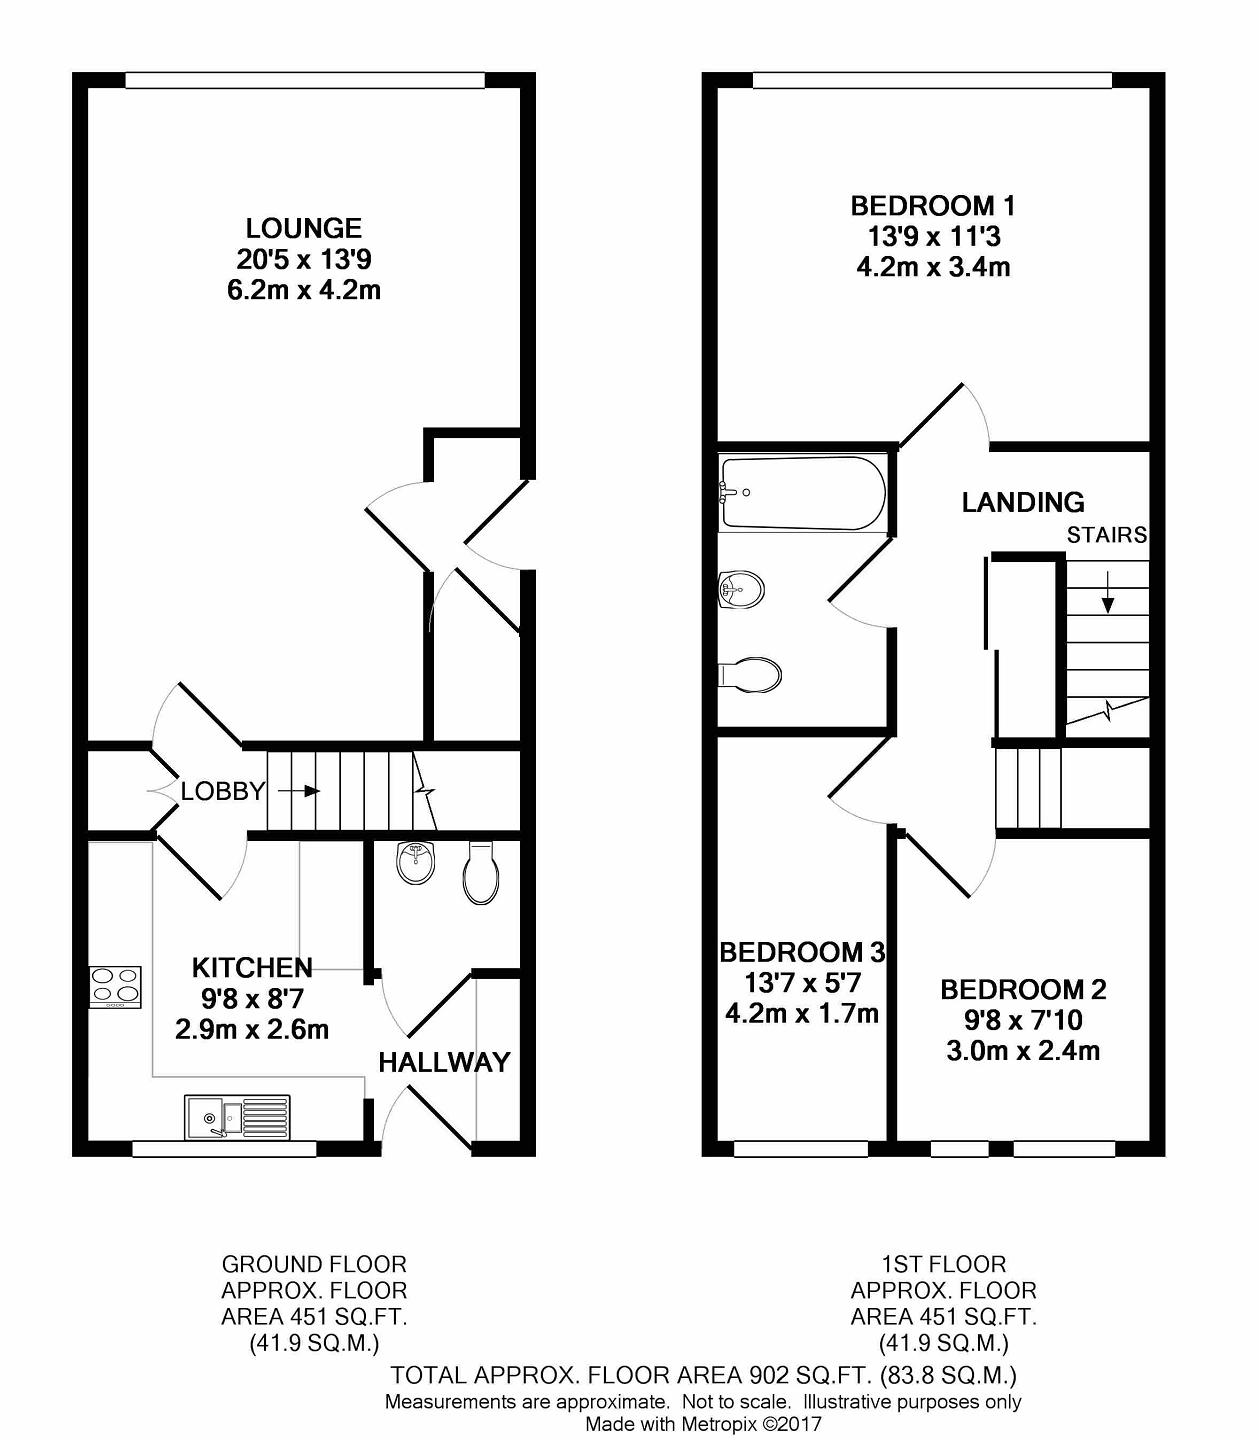 5 x 9 bathroom floor plans 5x8 bathroom floor plan wood floors for 6 x 14 bathroom layout